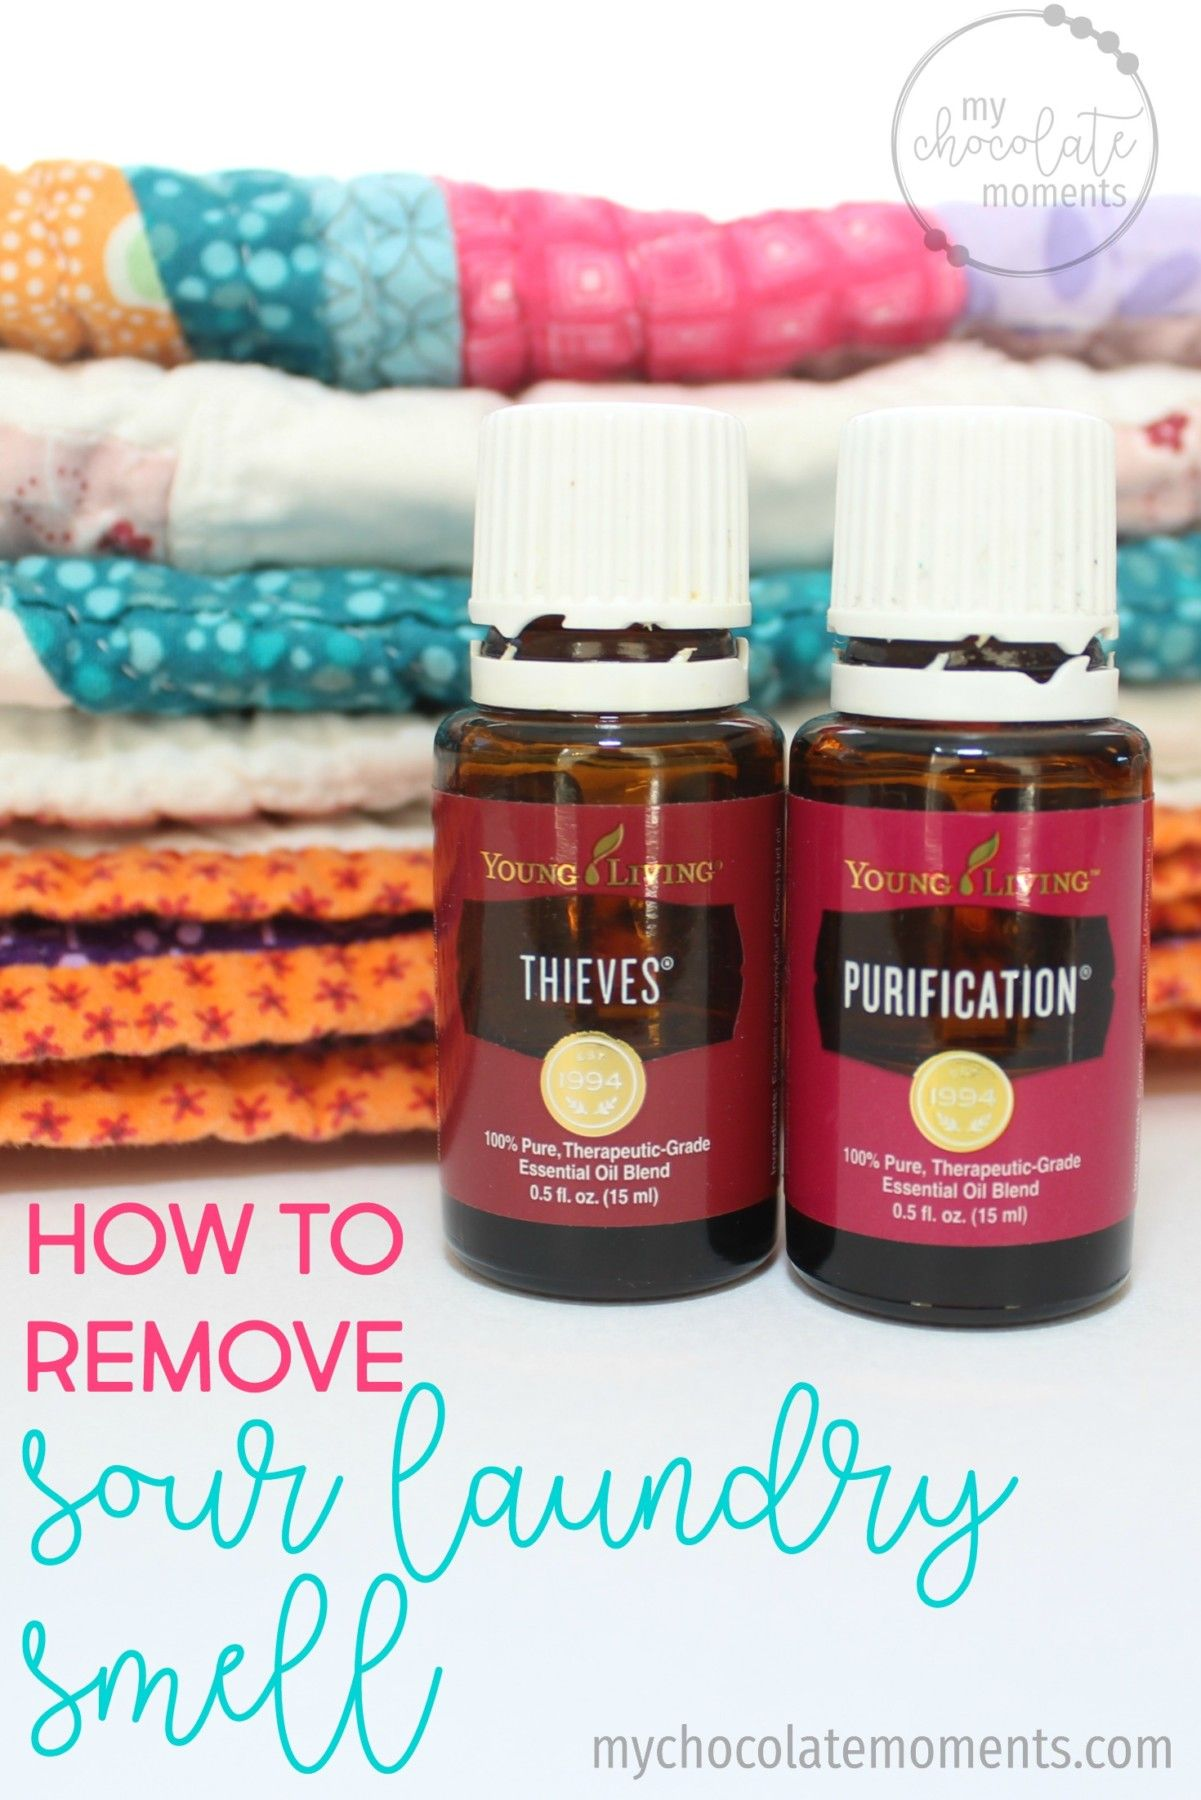 how to remove sour laundry smell with Young Living essential oils